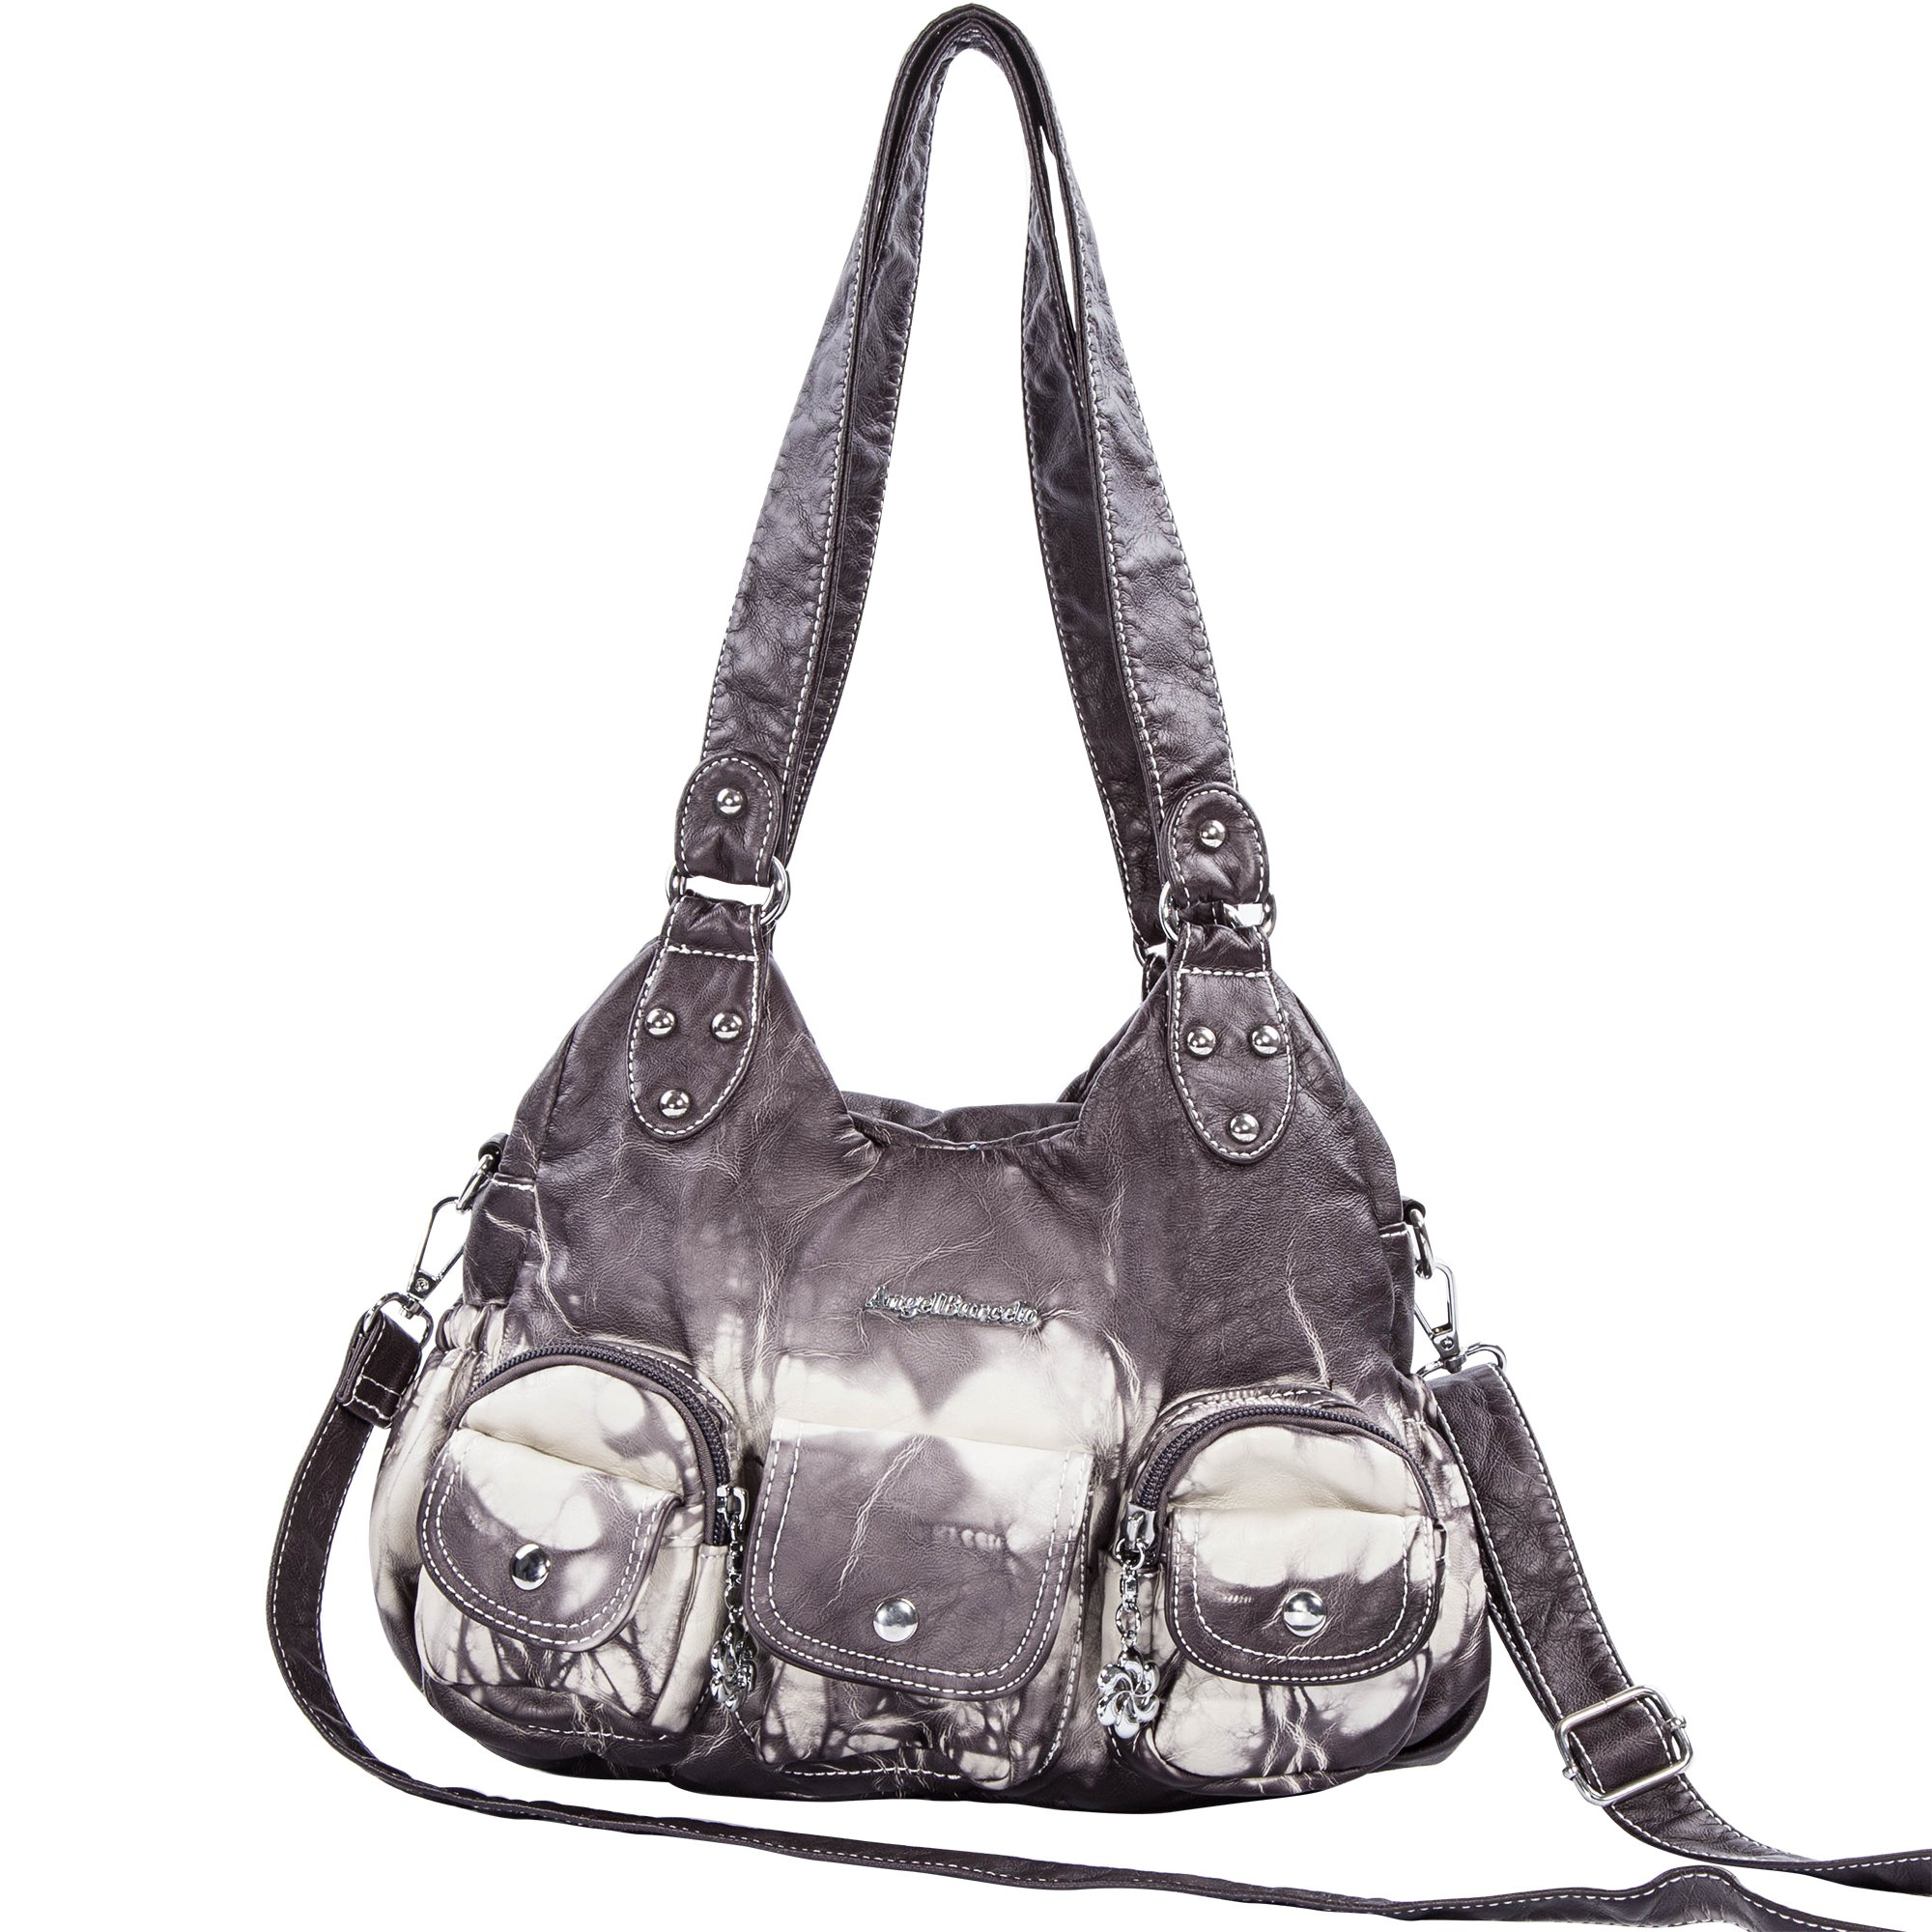 Angelbarcelo Soft Roomy Fashion Hobo Womens Handbags Ladies Purses Satchel Shoulder Bags Tote Washed Leather Bag (XS161497 Gray)